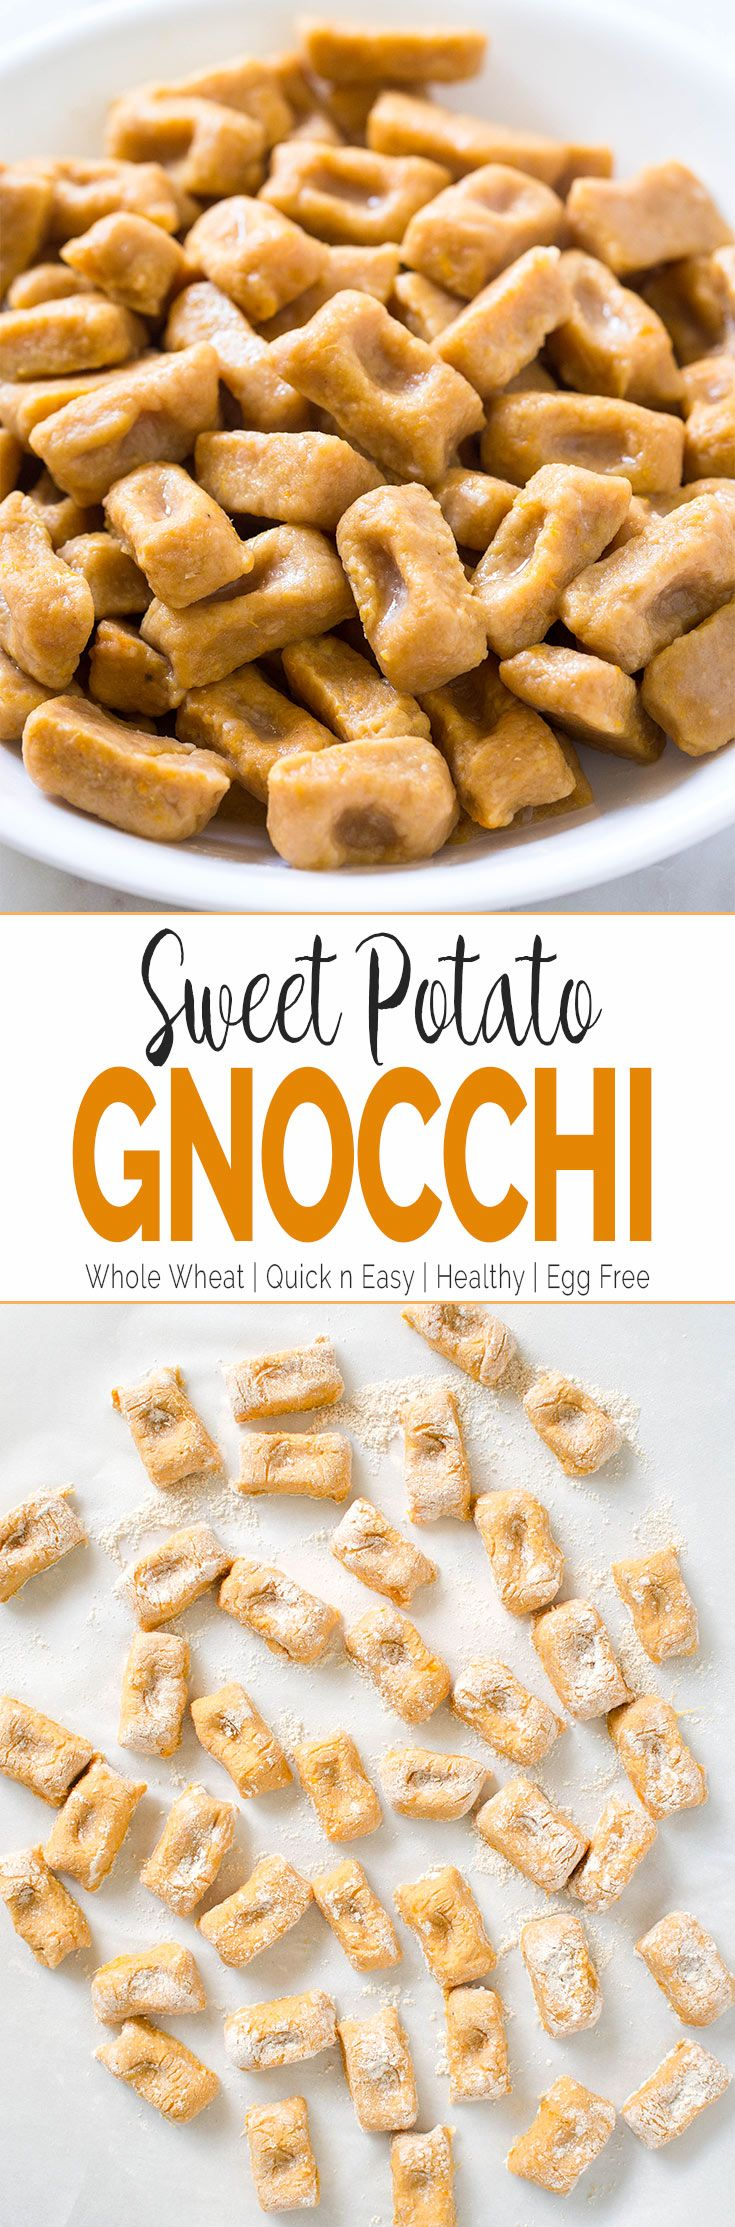 Homemade sweet potato gnocchi made using whole grain flour blend and fresh sweet potato puree. You will never want to buy gnocchi from the stores once you try this. #pasta #healthyrecipes #sweetpotato #vegan #fall